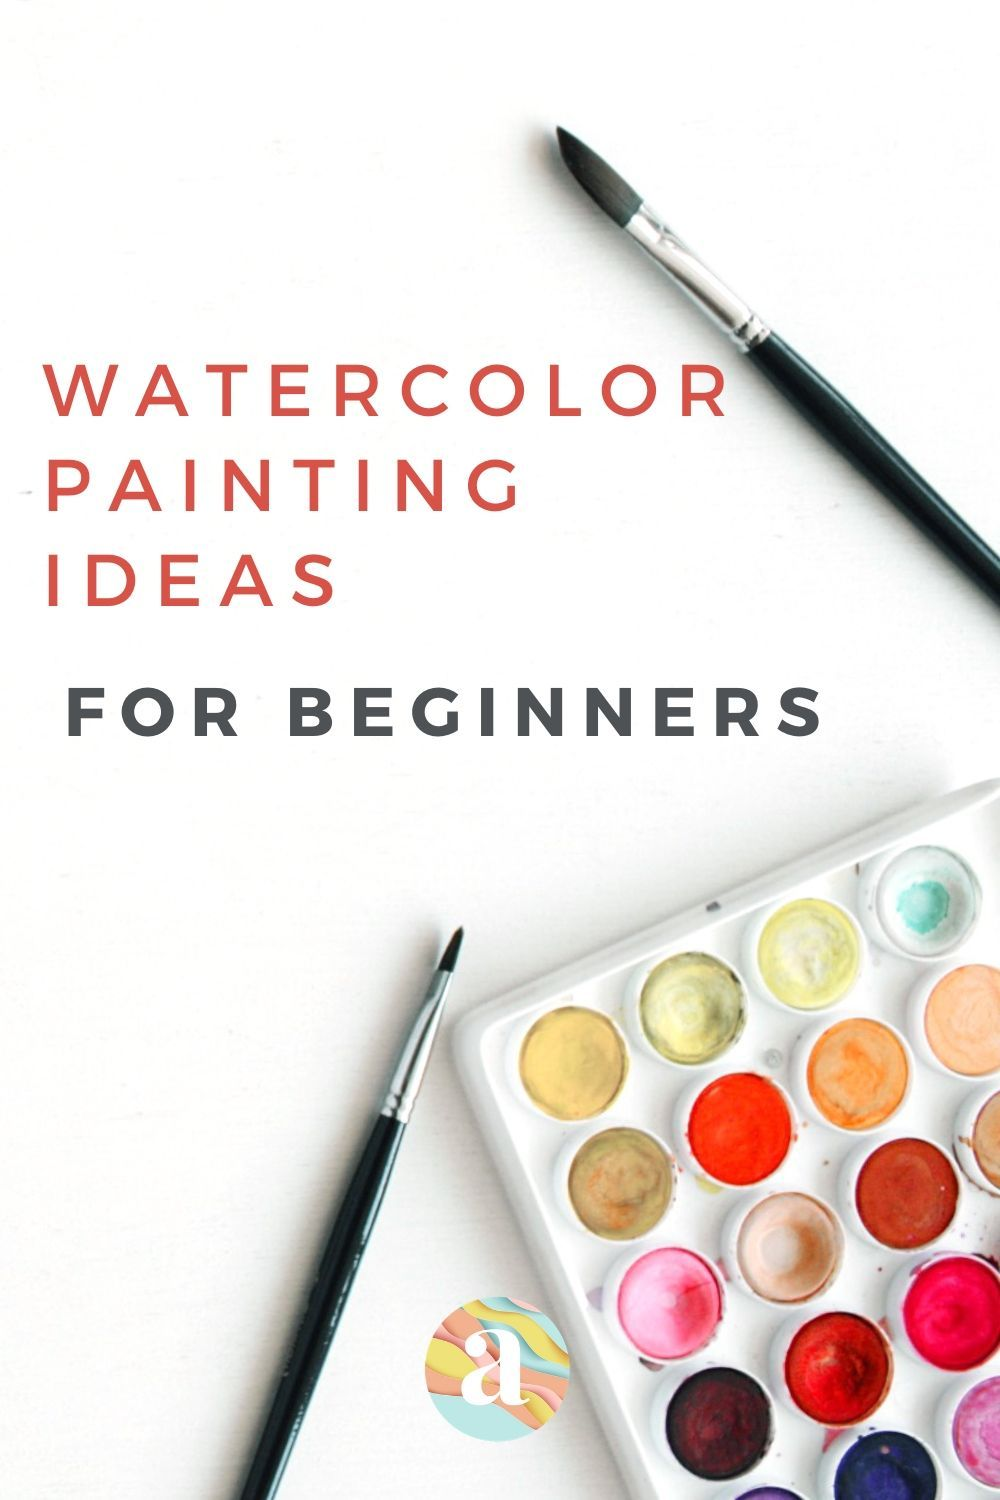 10 Ideas for Your Next Watercolor Painting - Artist Hue